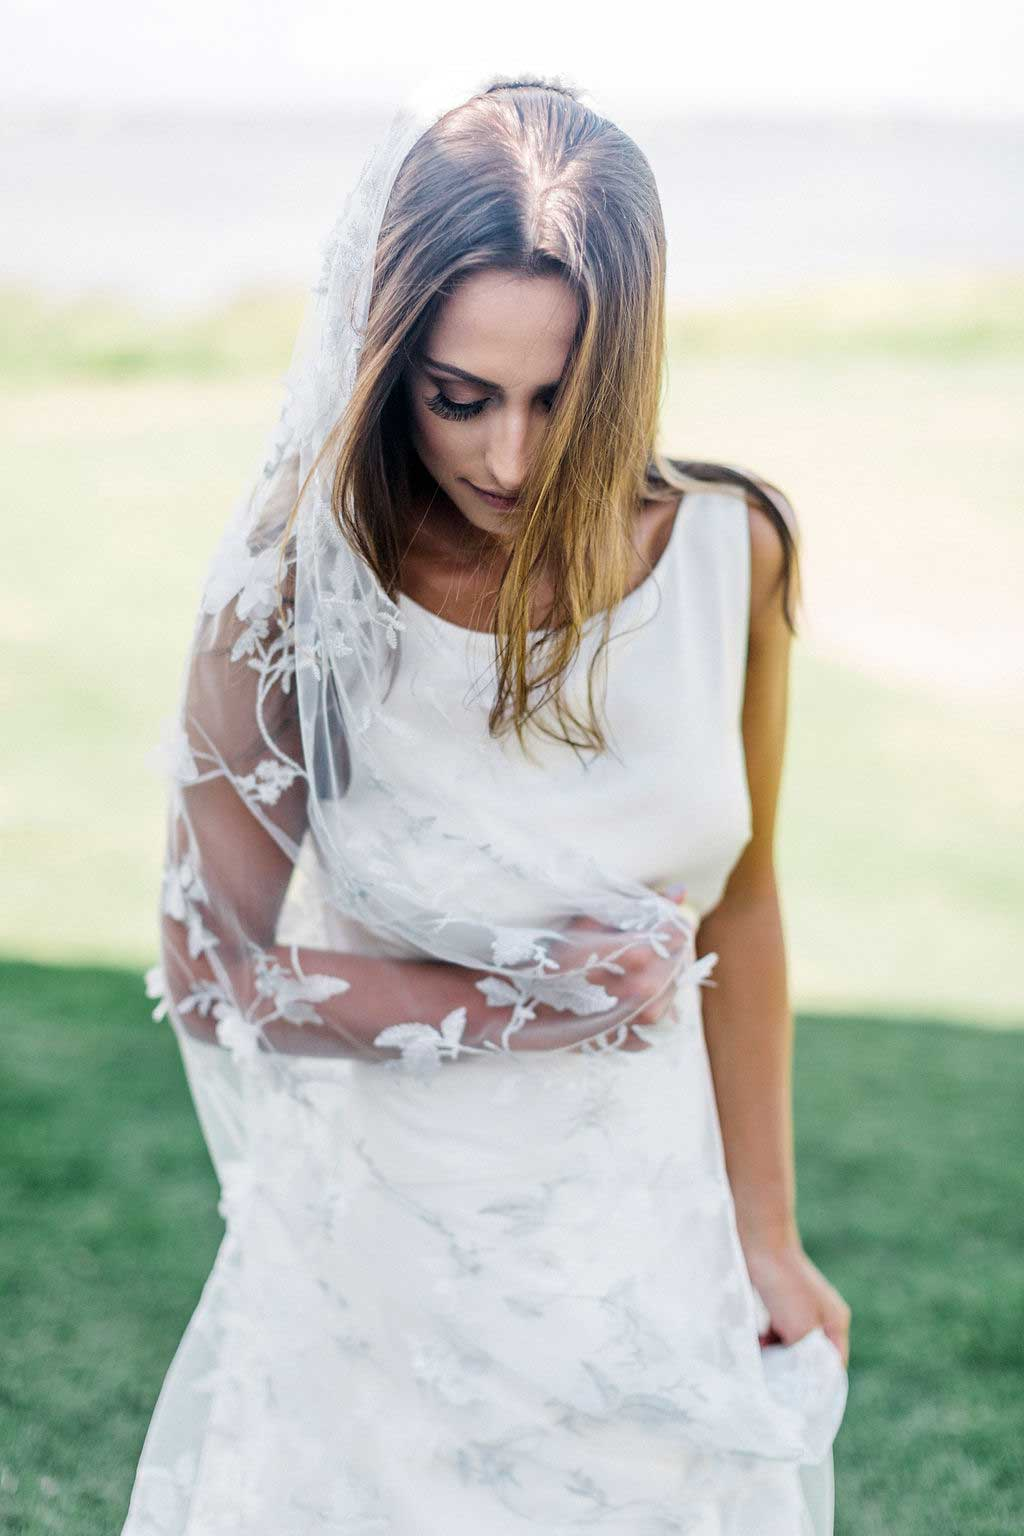 Bride looking down wearing Iris wedding veil by Mauve et Blush embroidered with silver thread and floral motif